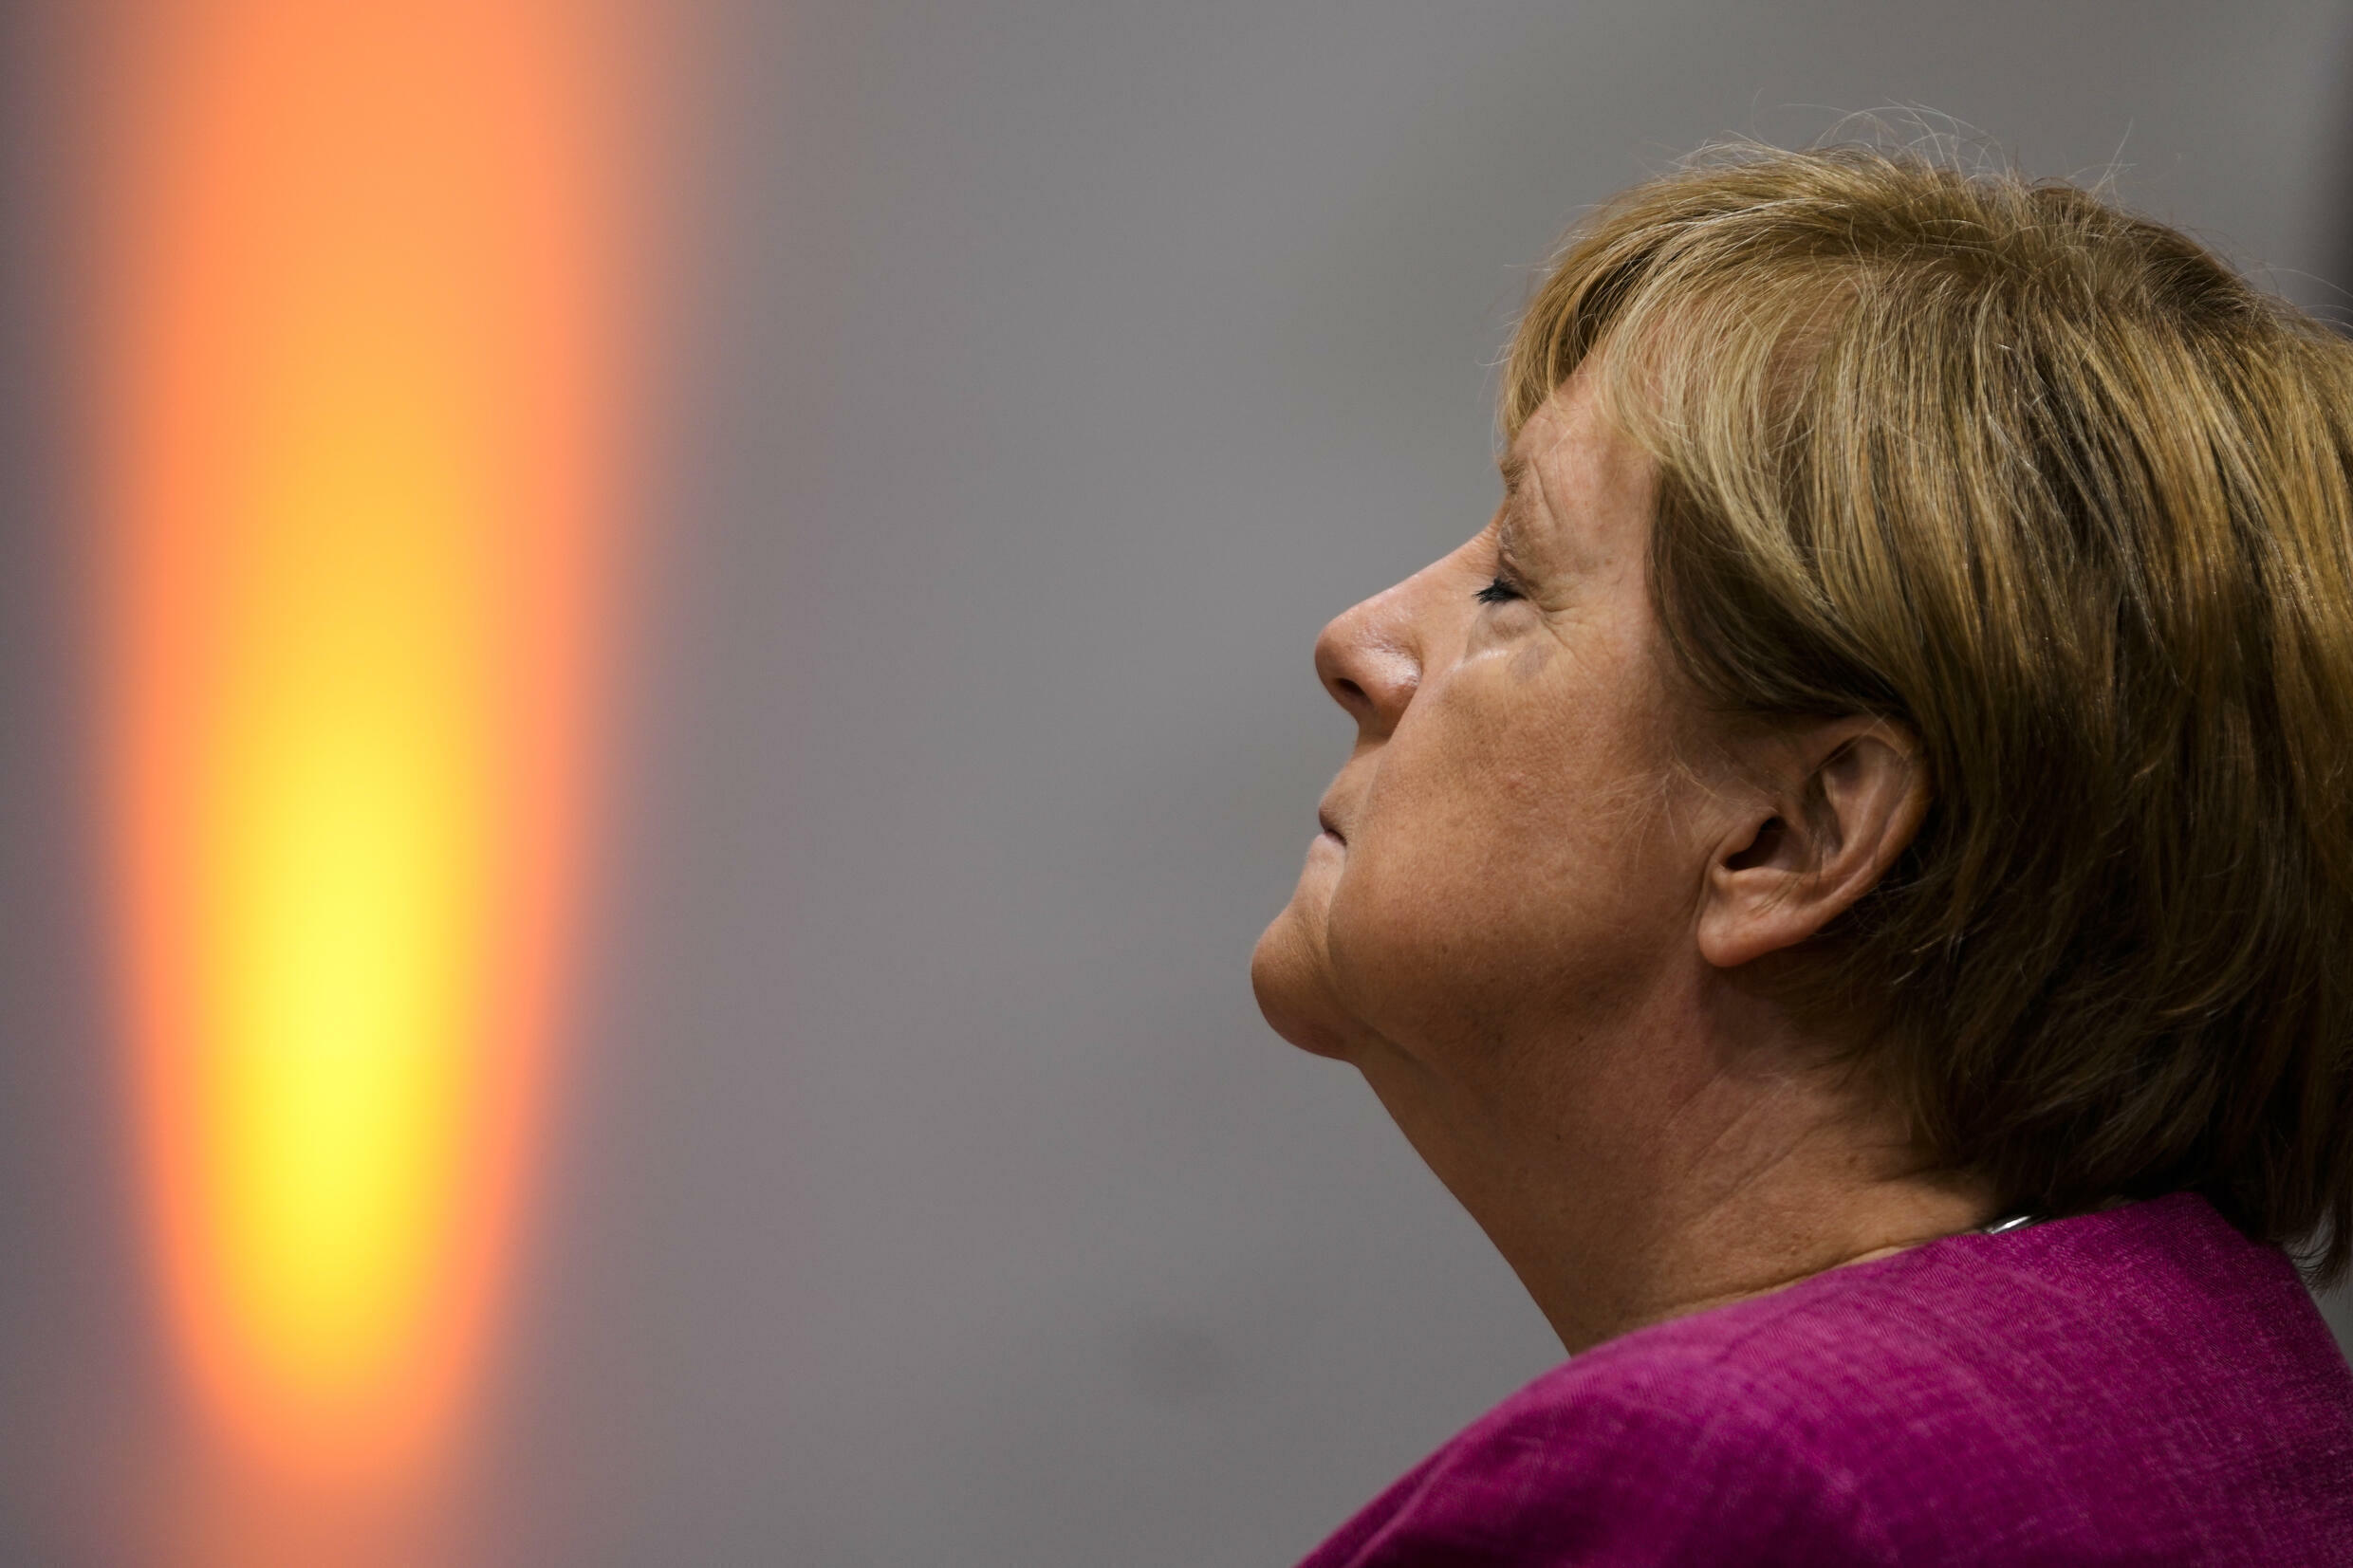 Angela Merkel has been dubbed 'Queen of Europe' by some observers after 16 years as German chancellor